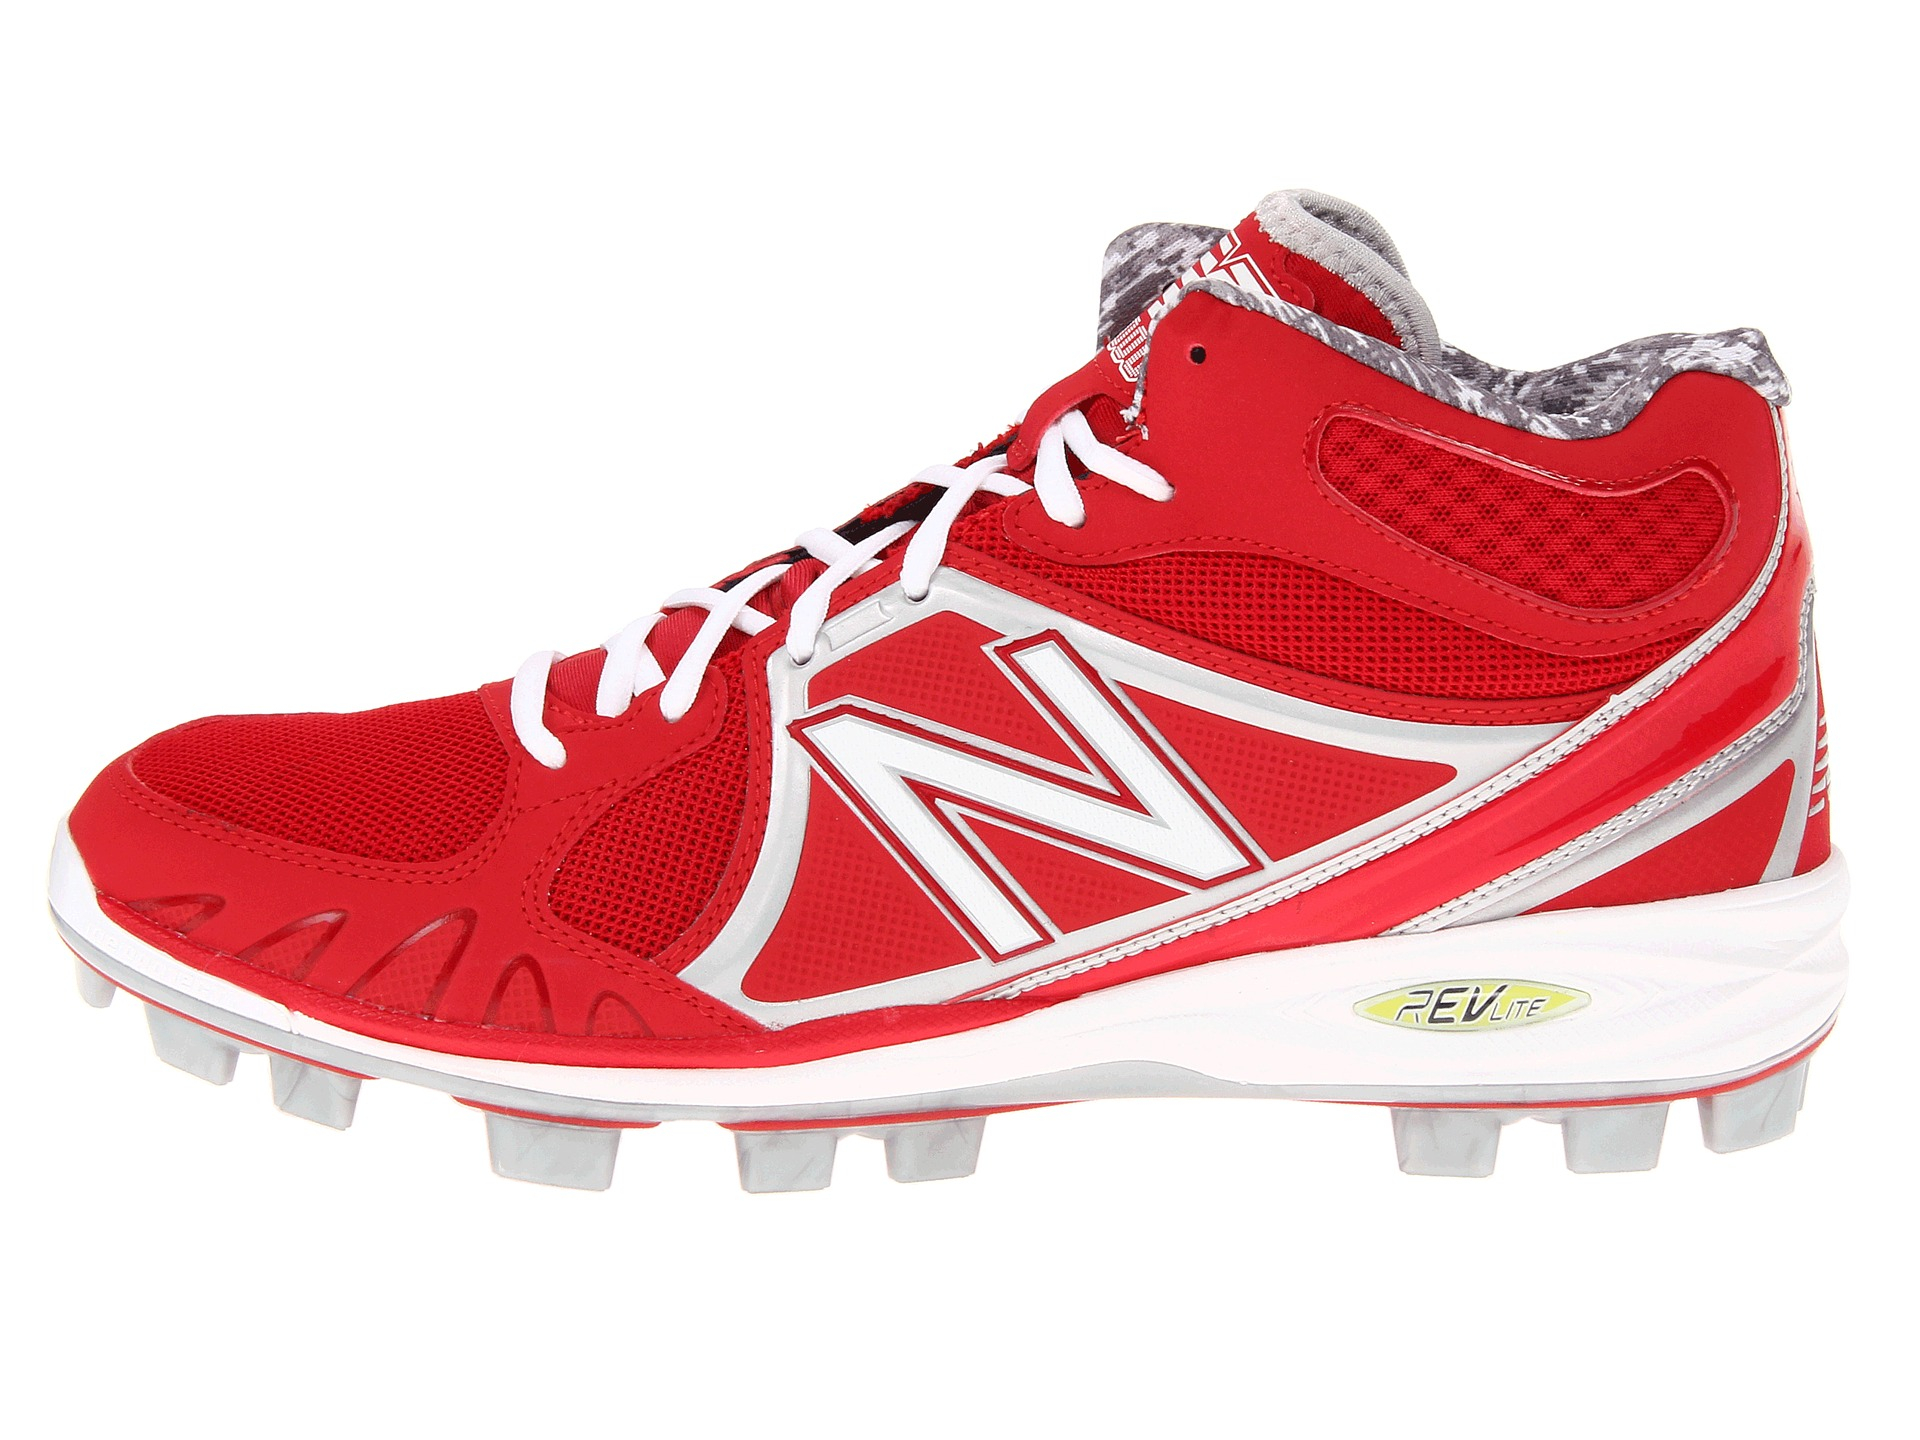 New Balance Mid Cut 4040v3 Tpu Molded Cleat In Red For Men